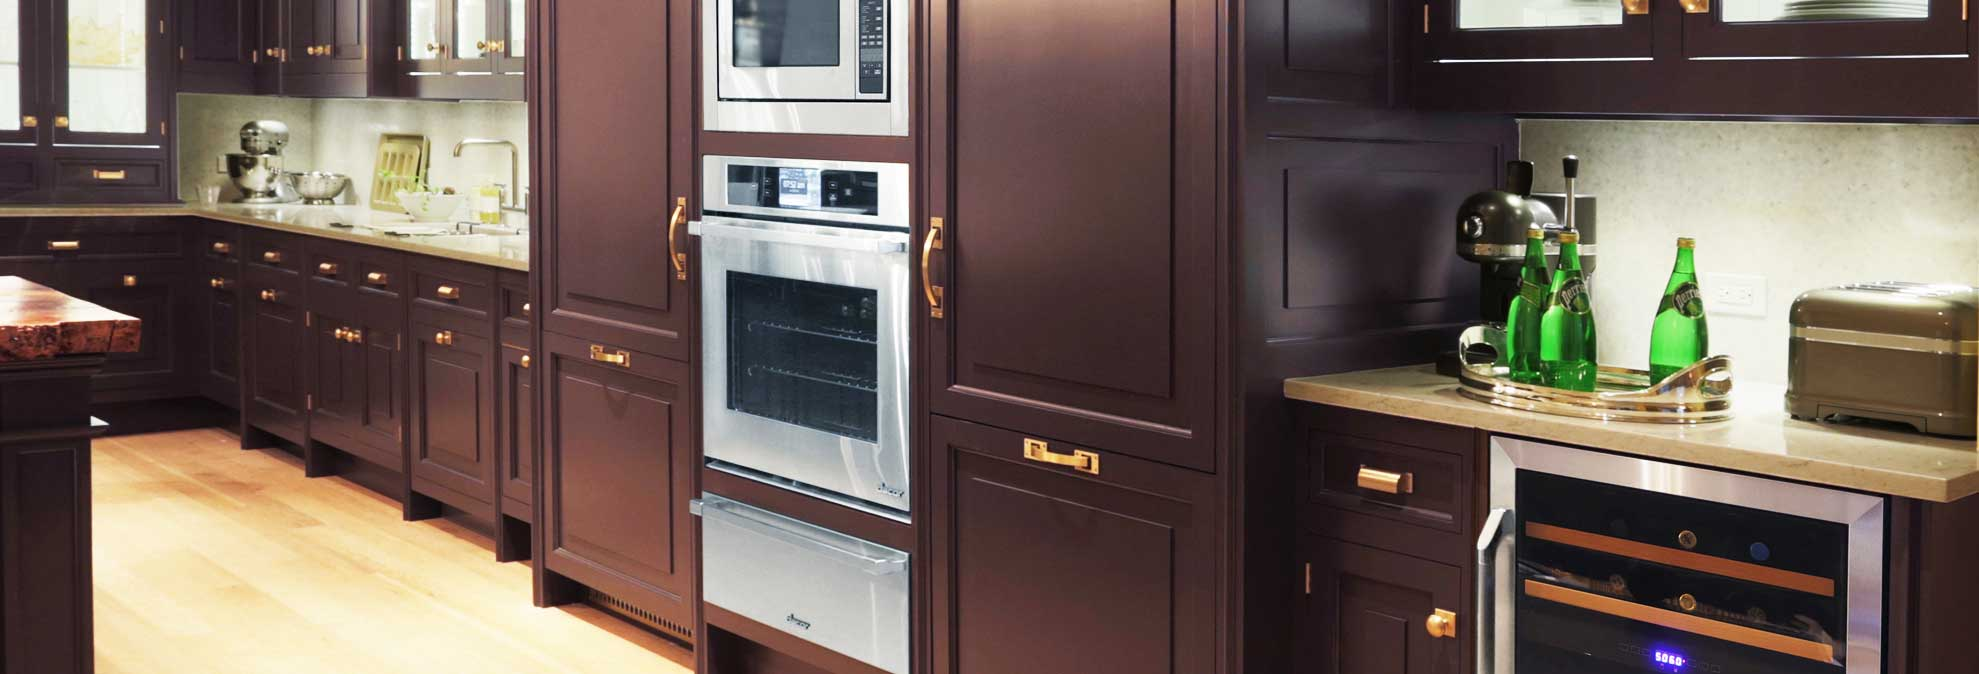 Interior Buying Kitchen Cabinets best kitchen cabinet buying guide consumer reports